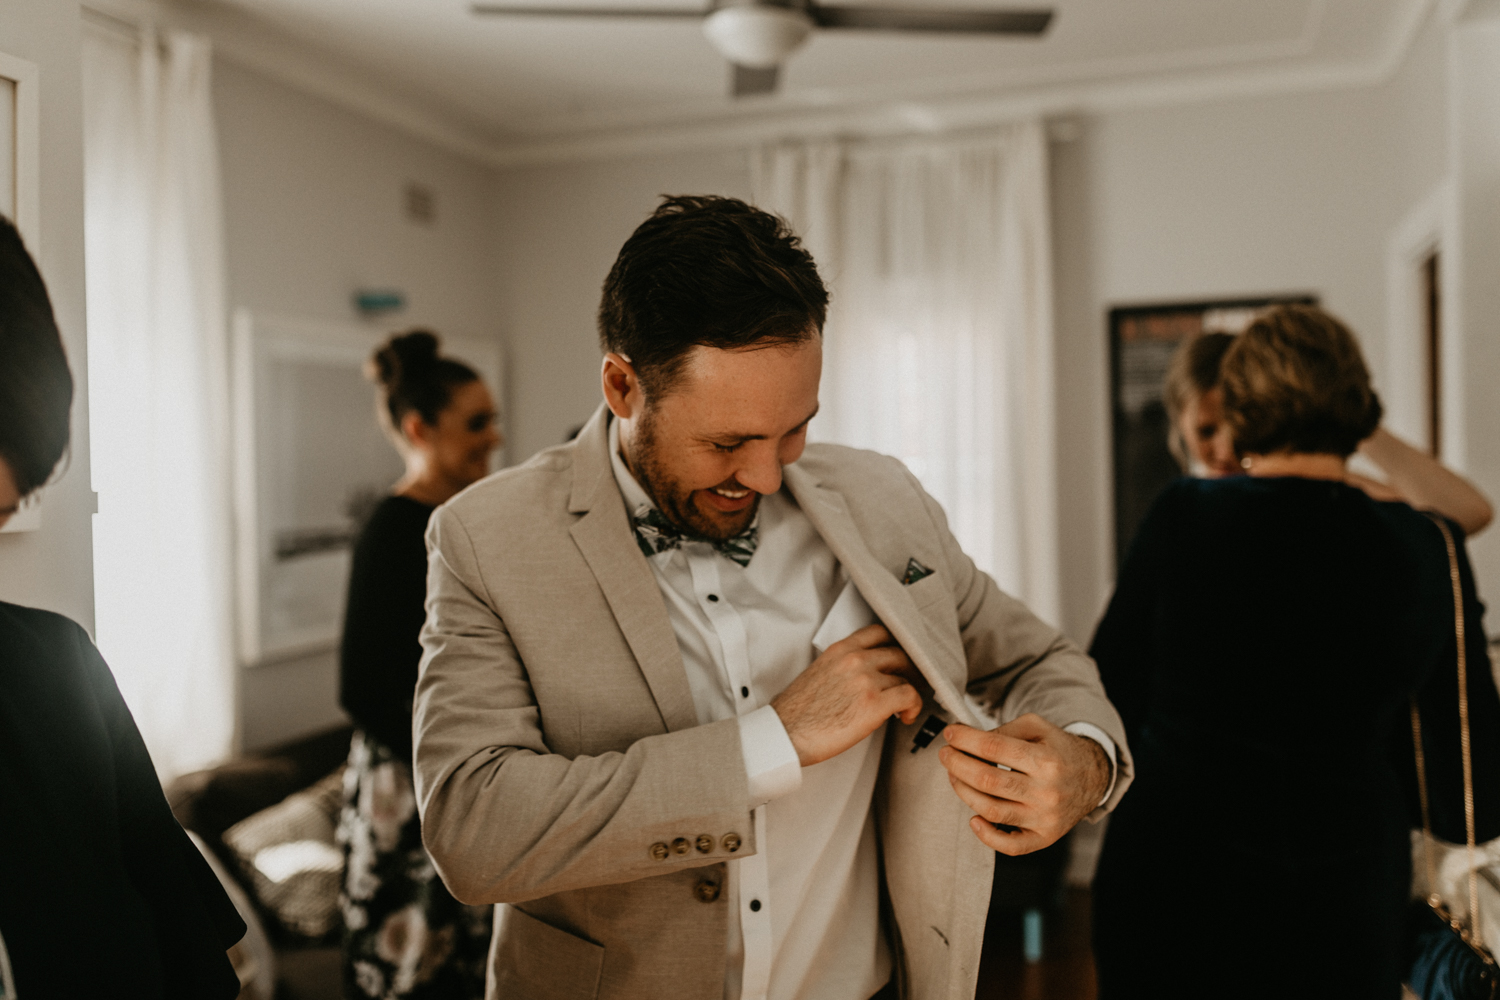 Sydney Romantic Authentic Natural Free Spirit Candid Wedding Photography-3-2.jpg